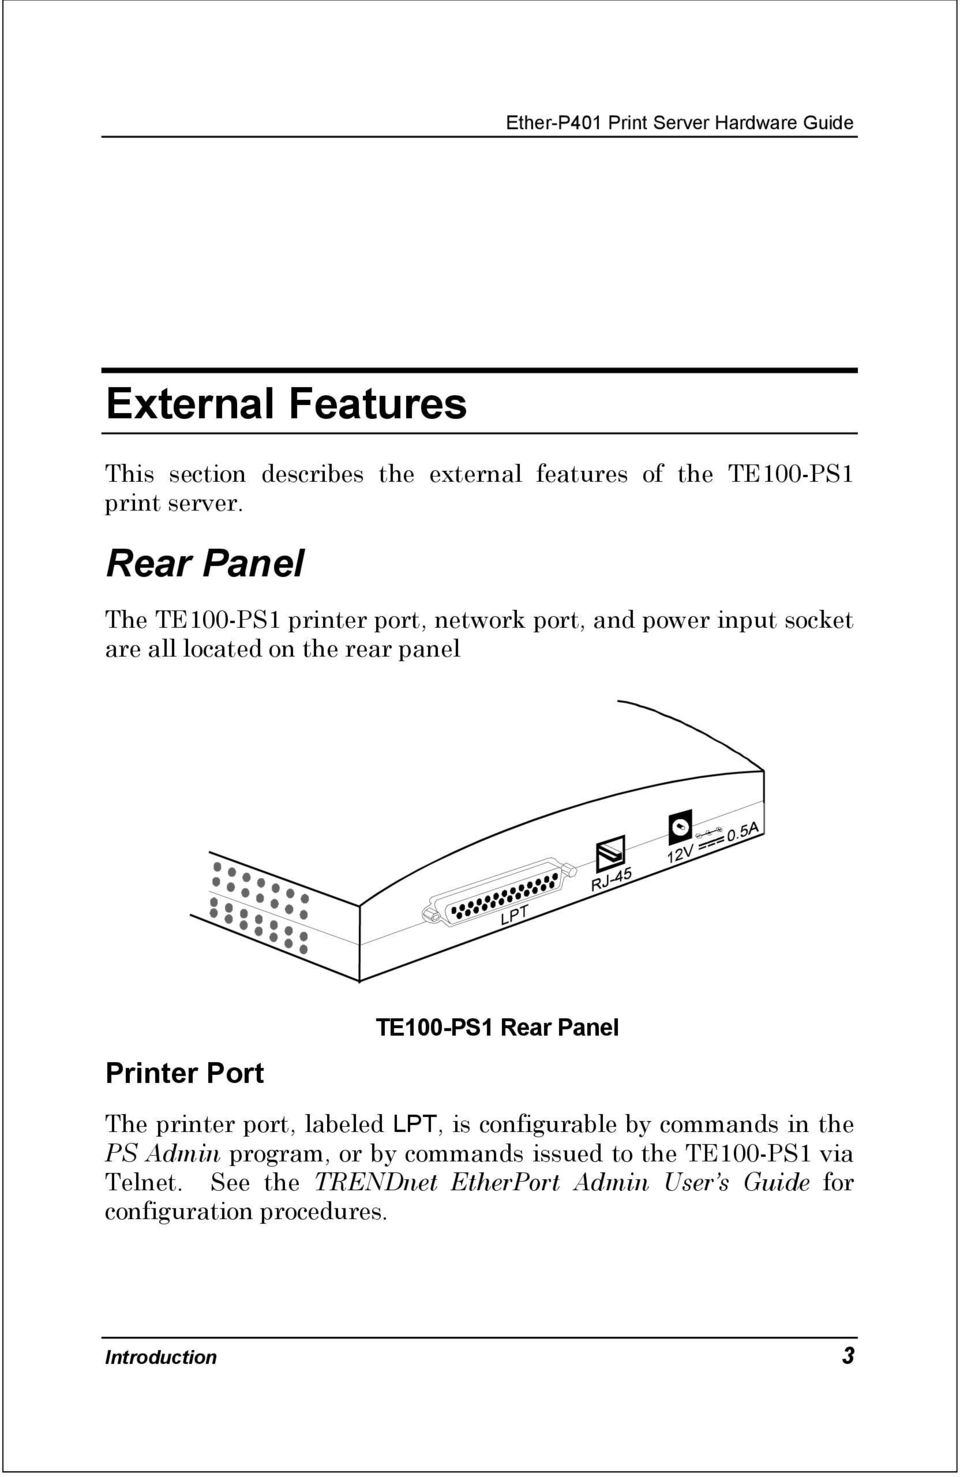 Rear Panel The TE100-PS1 printer port, network port, and power input socket are all located on the rear panel Printer Port